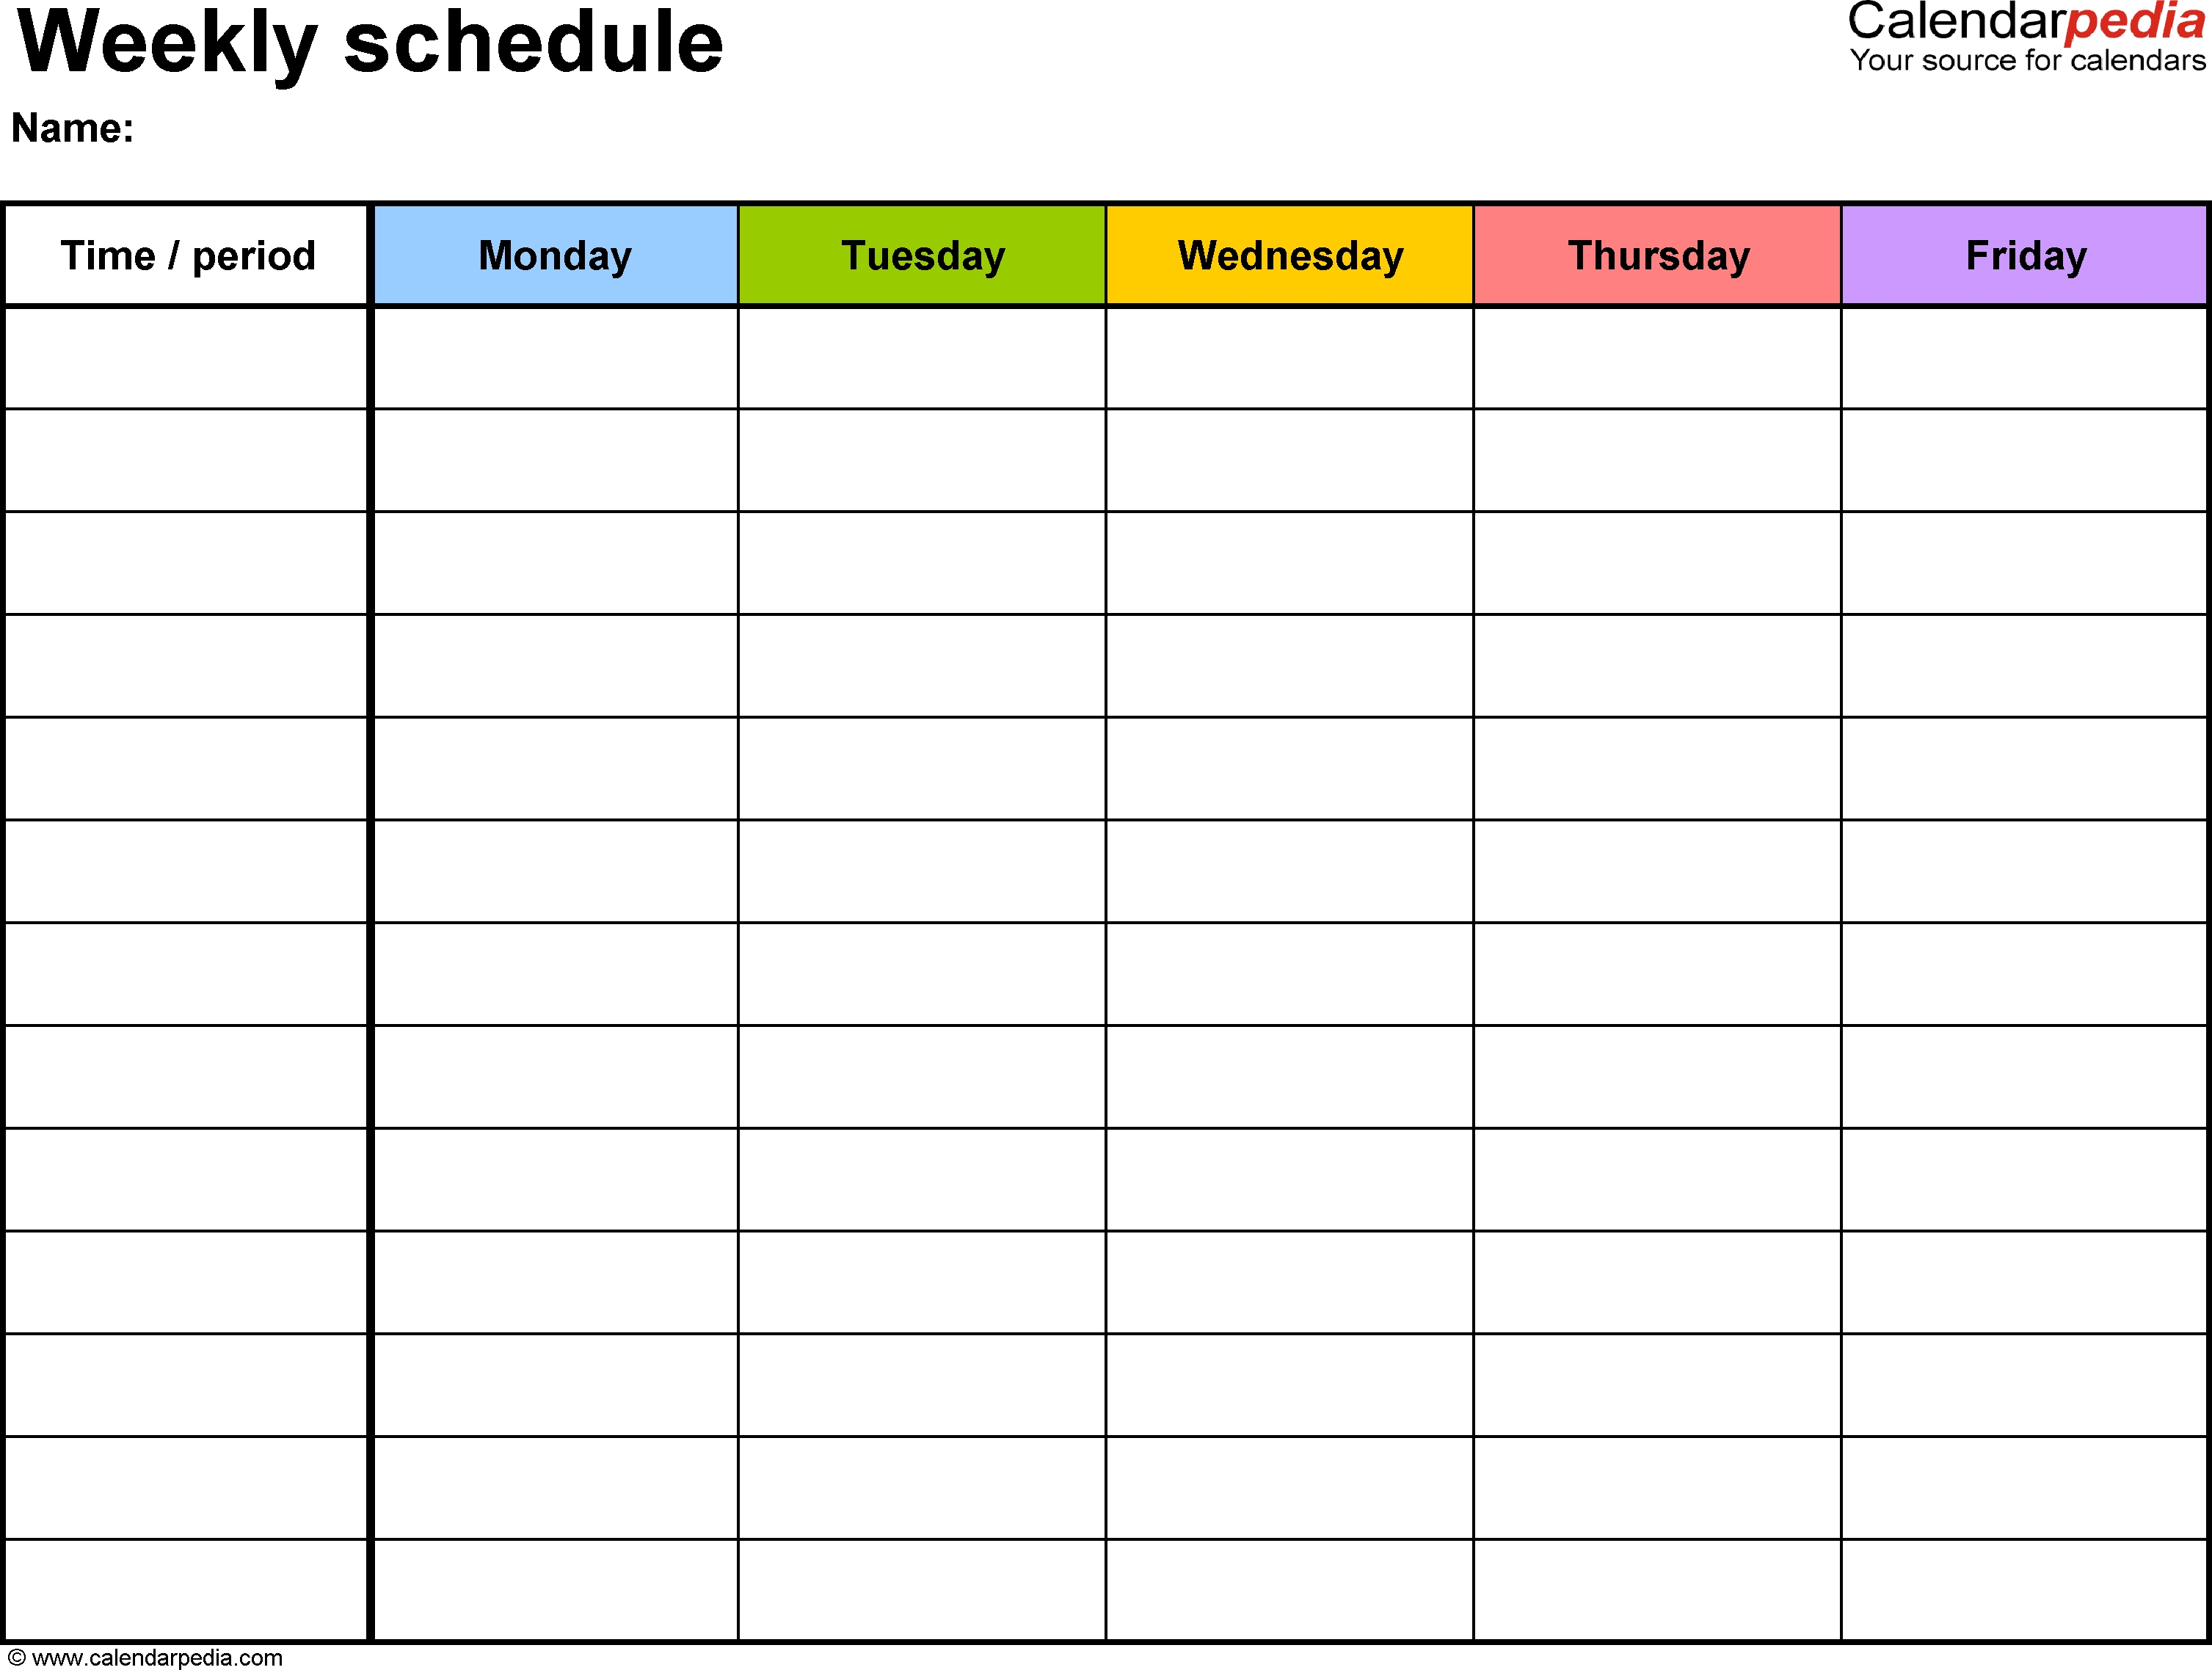 Free Weekly Schedule Templates For Word - 18 Templates intended for Blank 7 Day Calendar Template